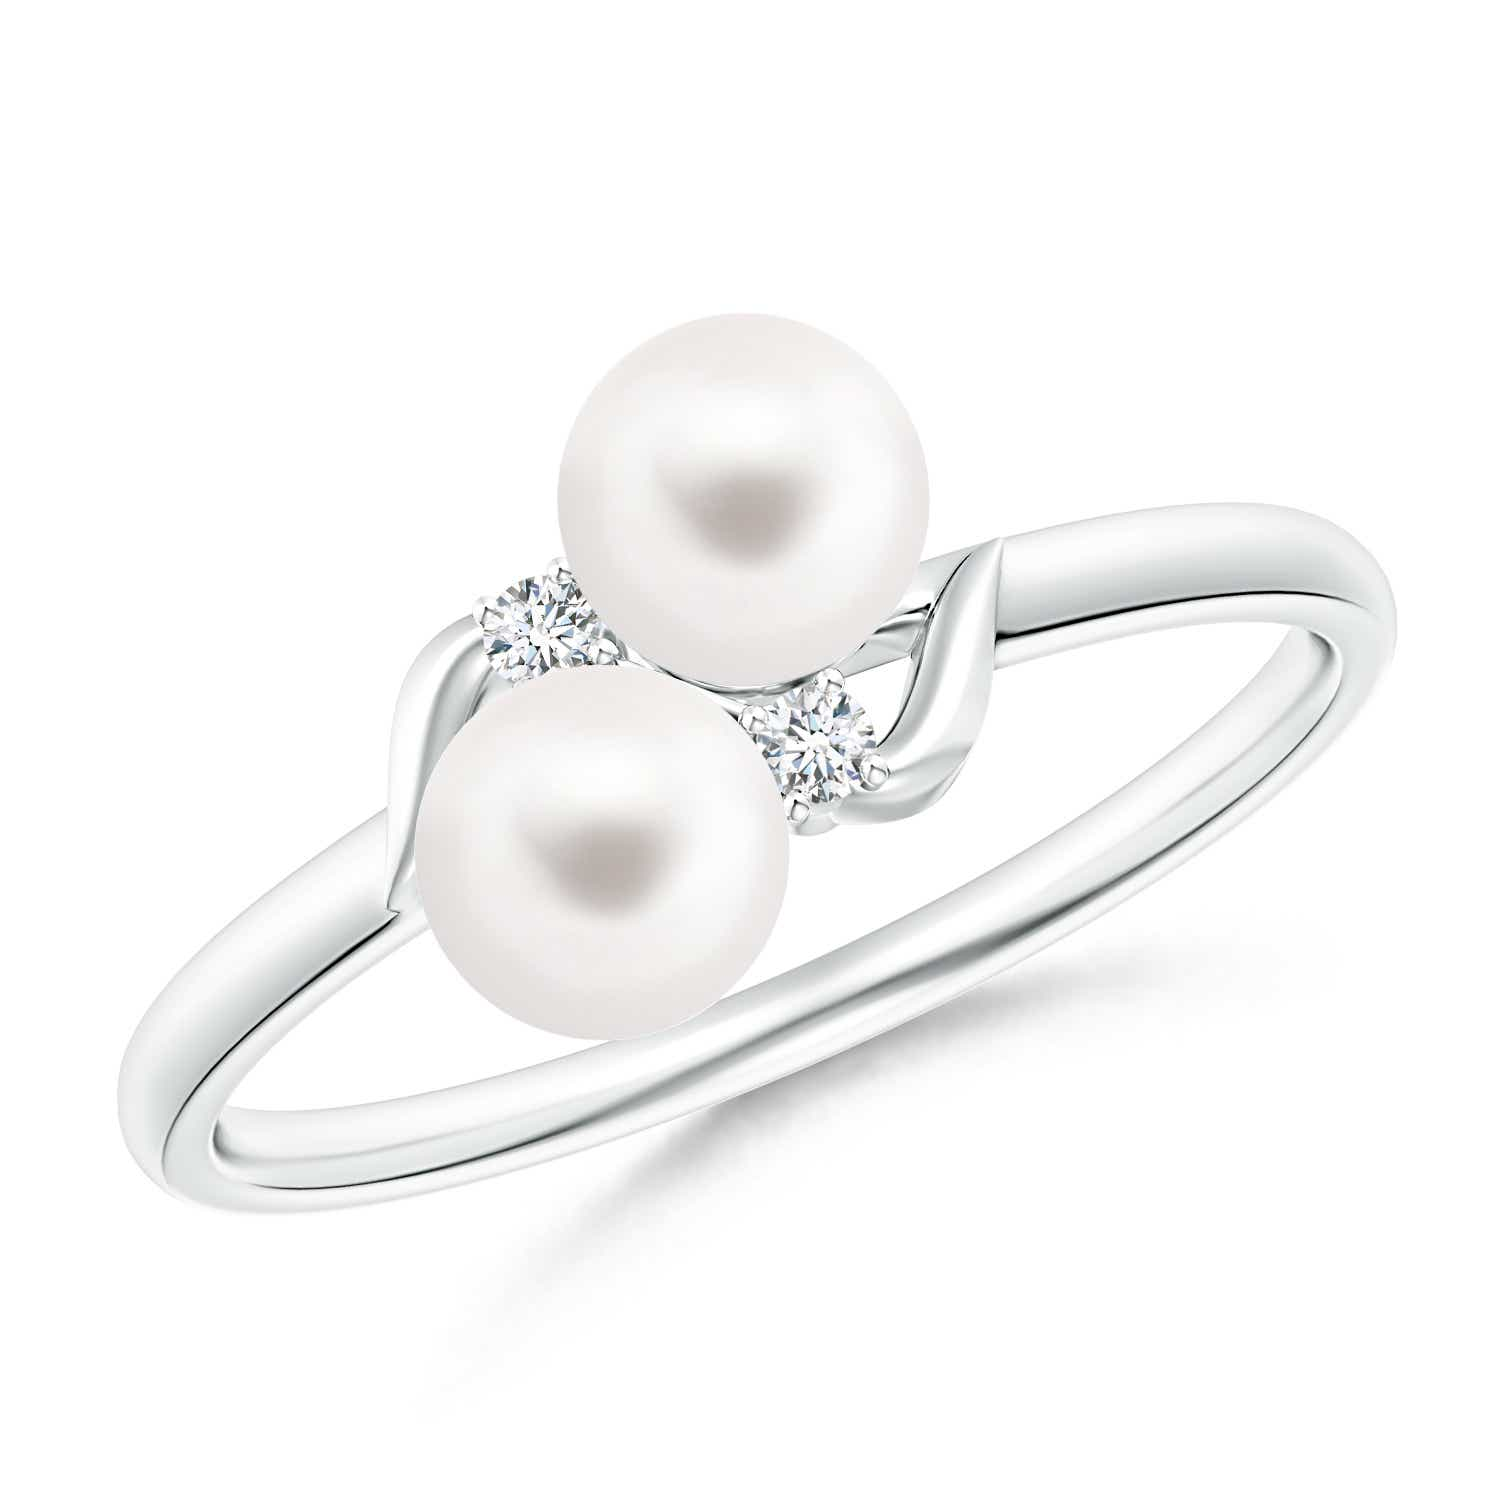 Angara Two Stone Freshwater Cultured Pearl Ring with Diamond Accents 71wjXhnAT